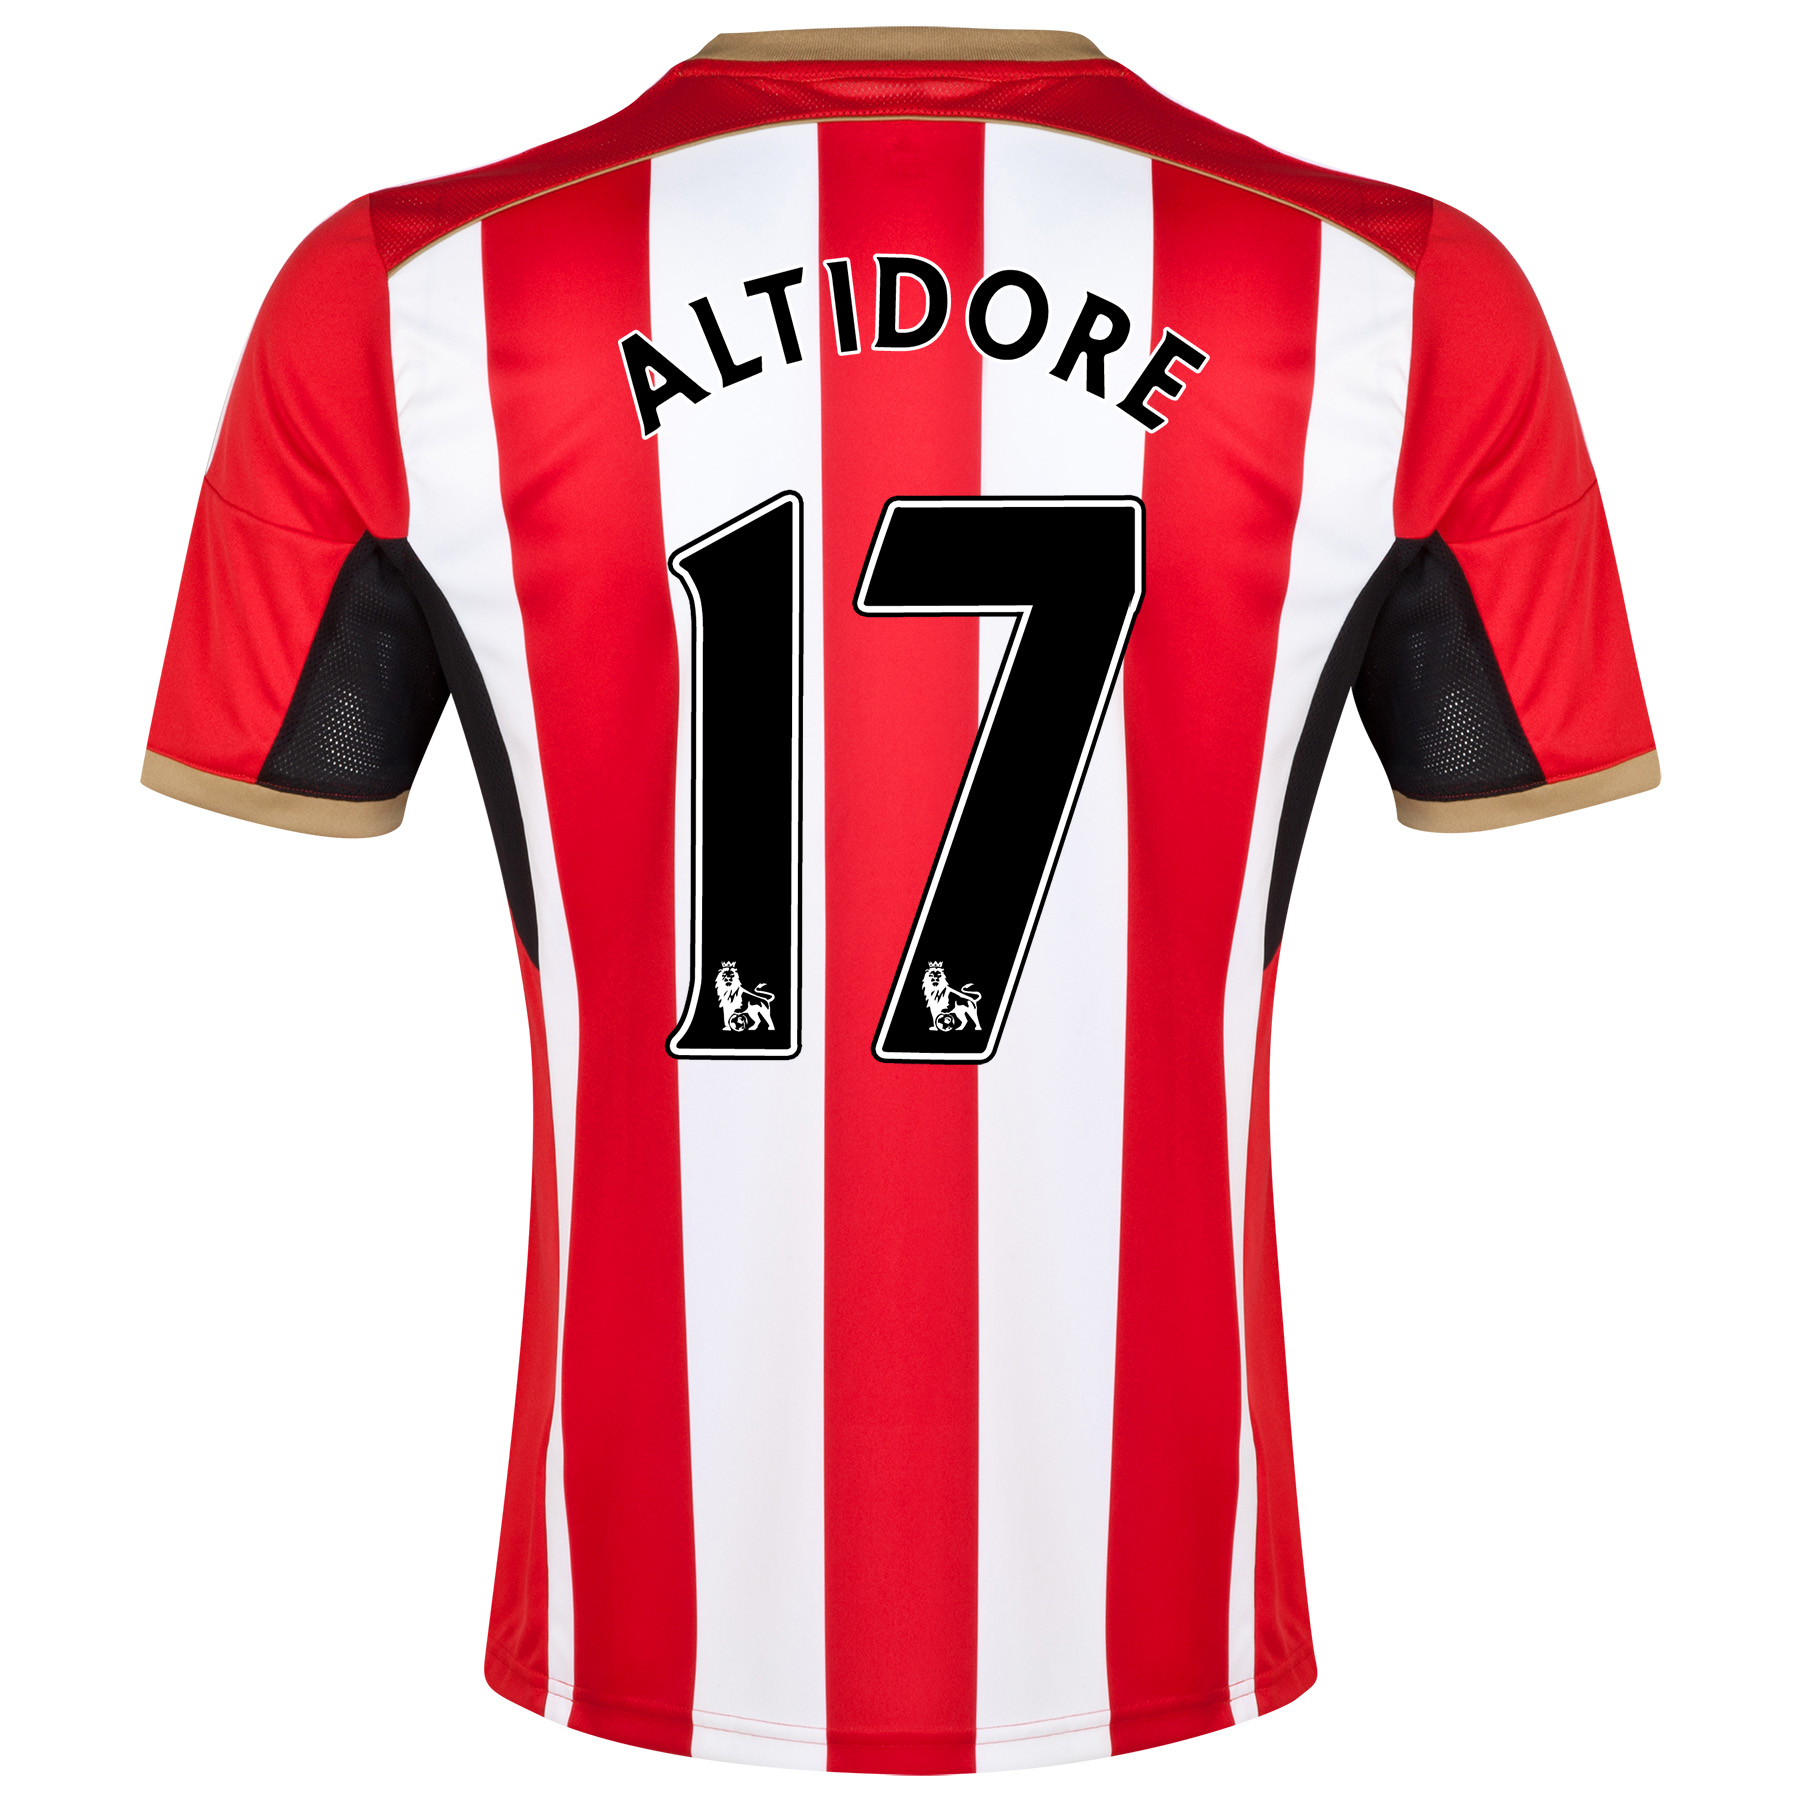 Sunderland Home Shirt 2014/15 - Junior Red with Altidore 17 printing